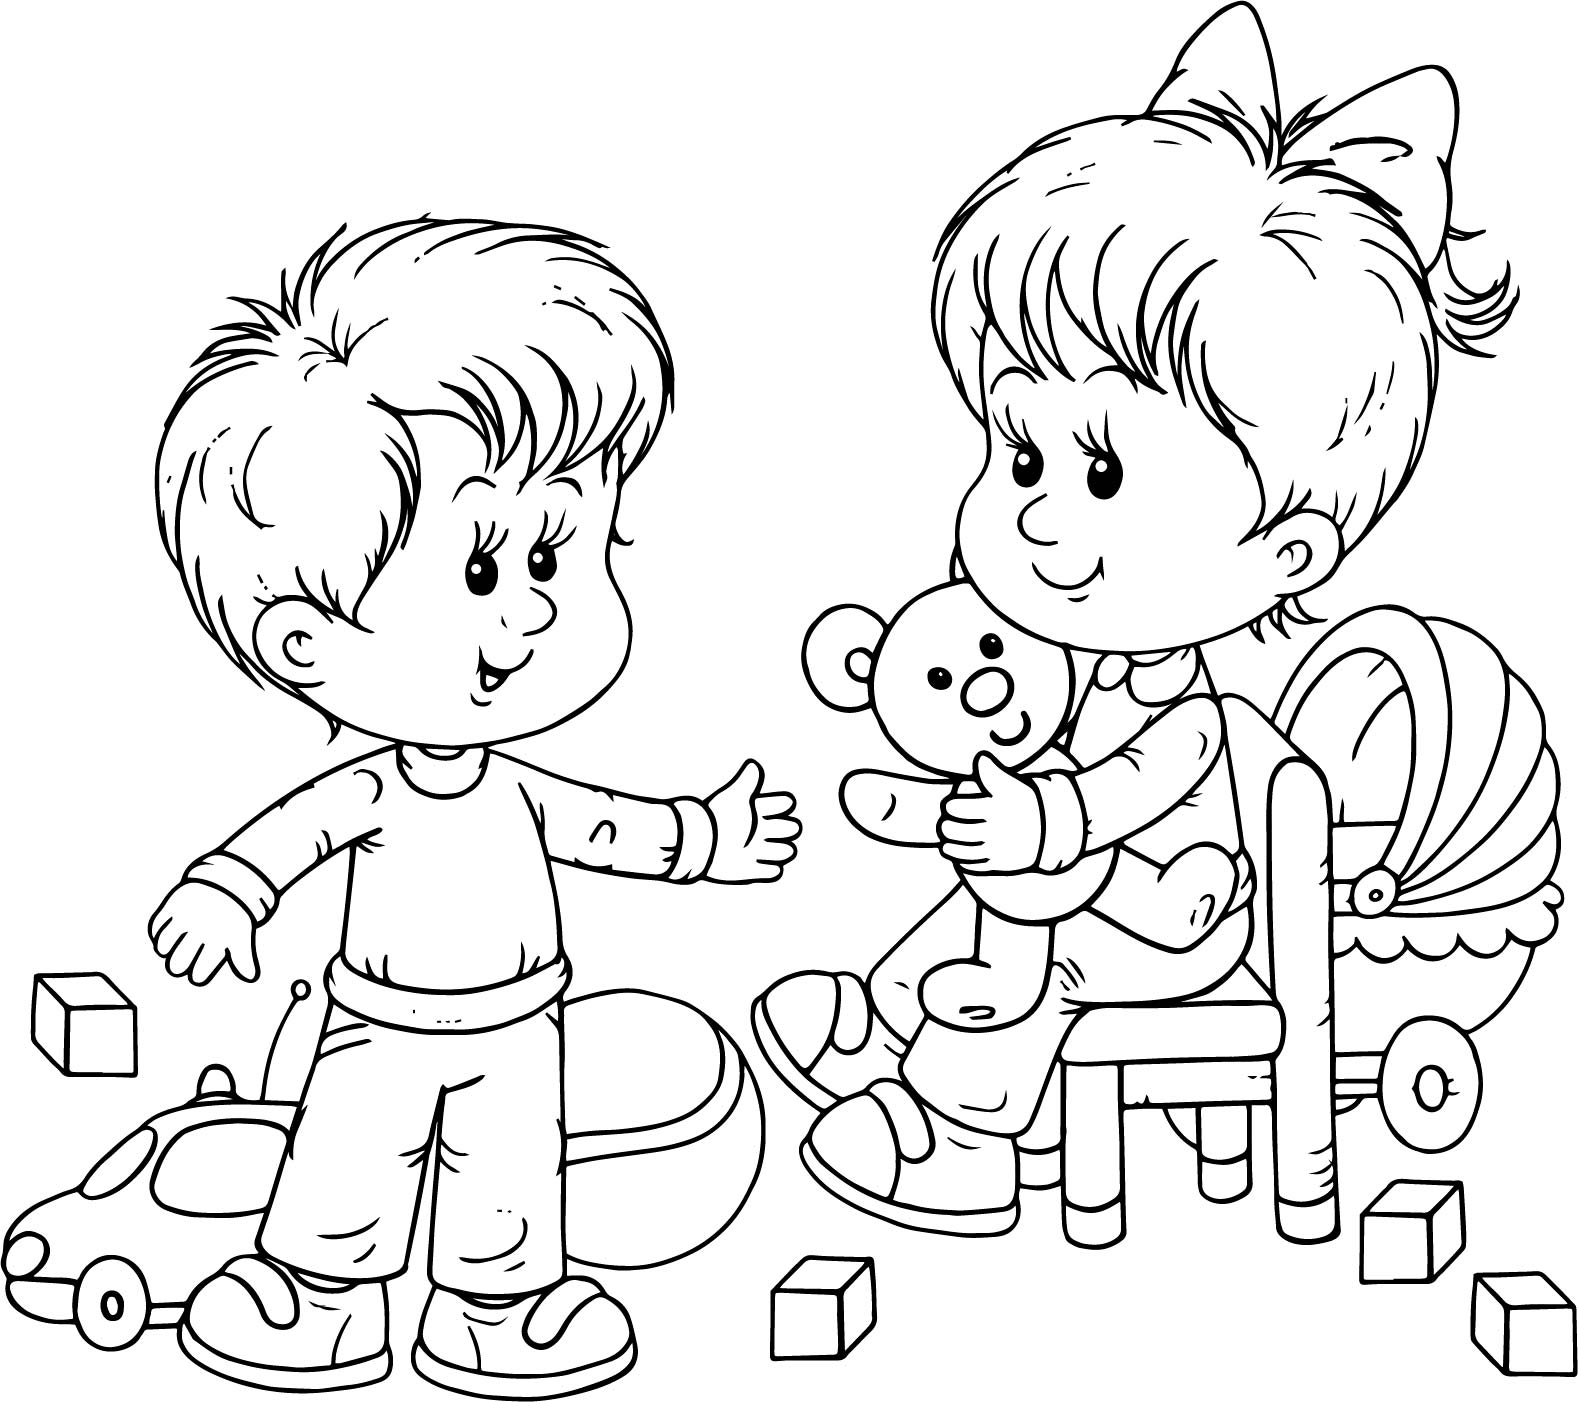 Preschool Boy And Girl Playing Toys Coloring Page Wecoloringpage